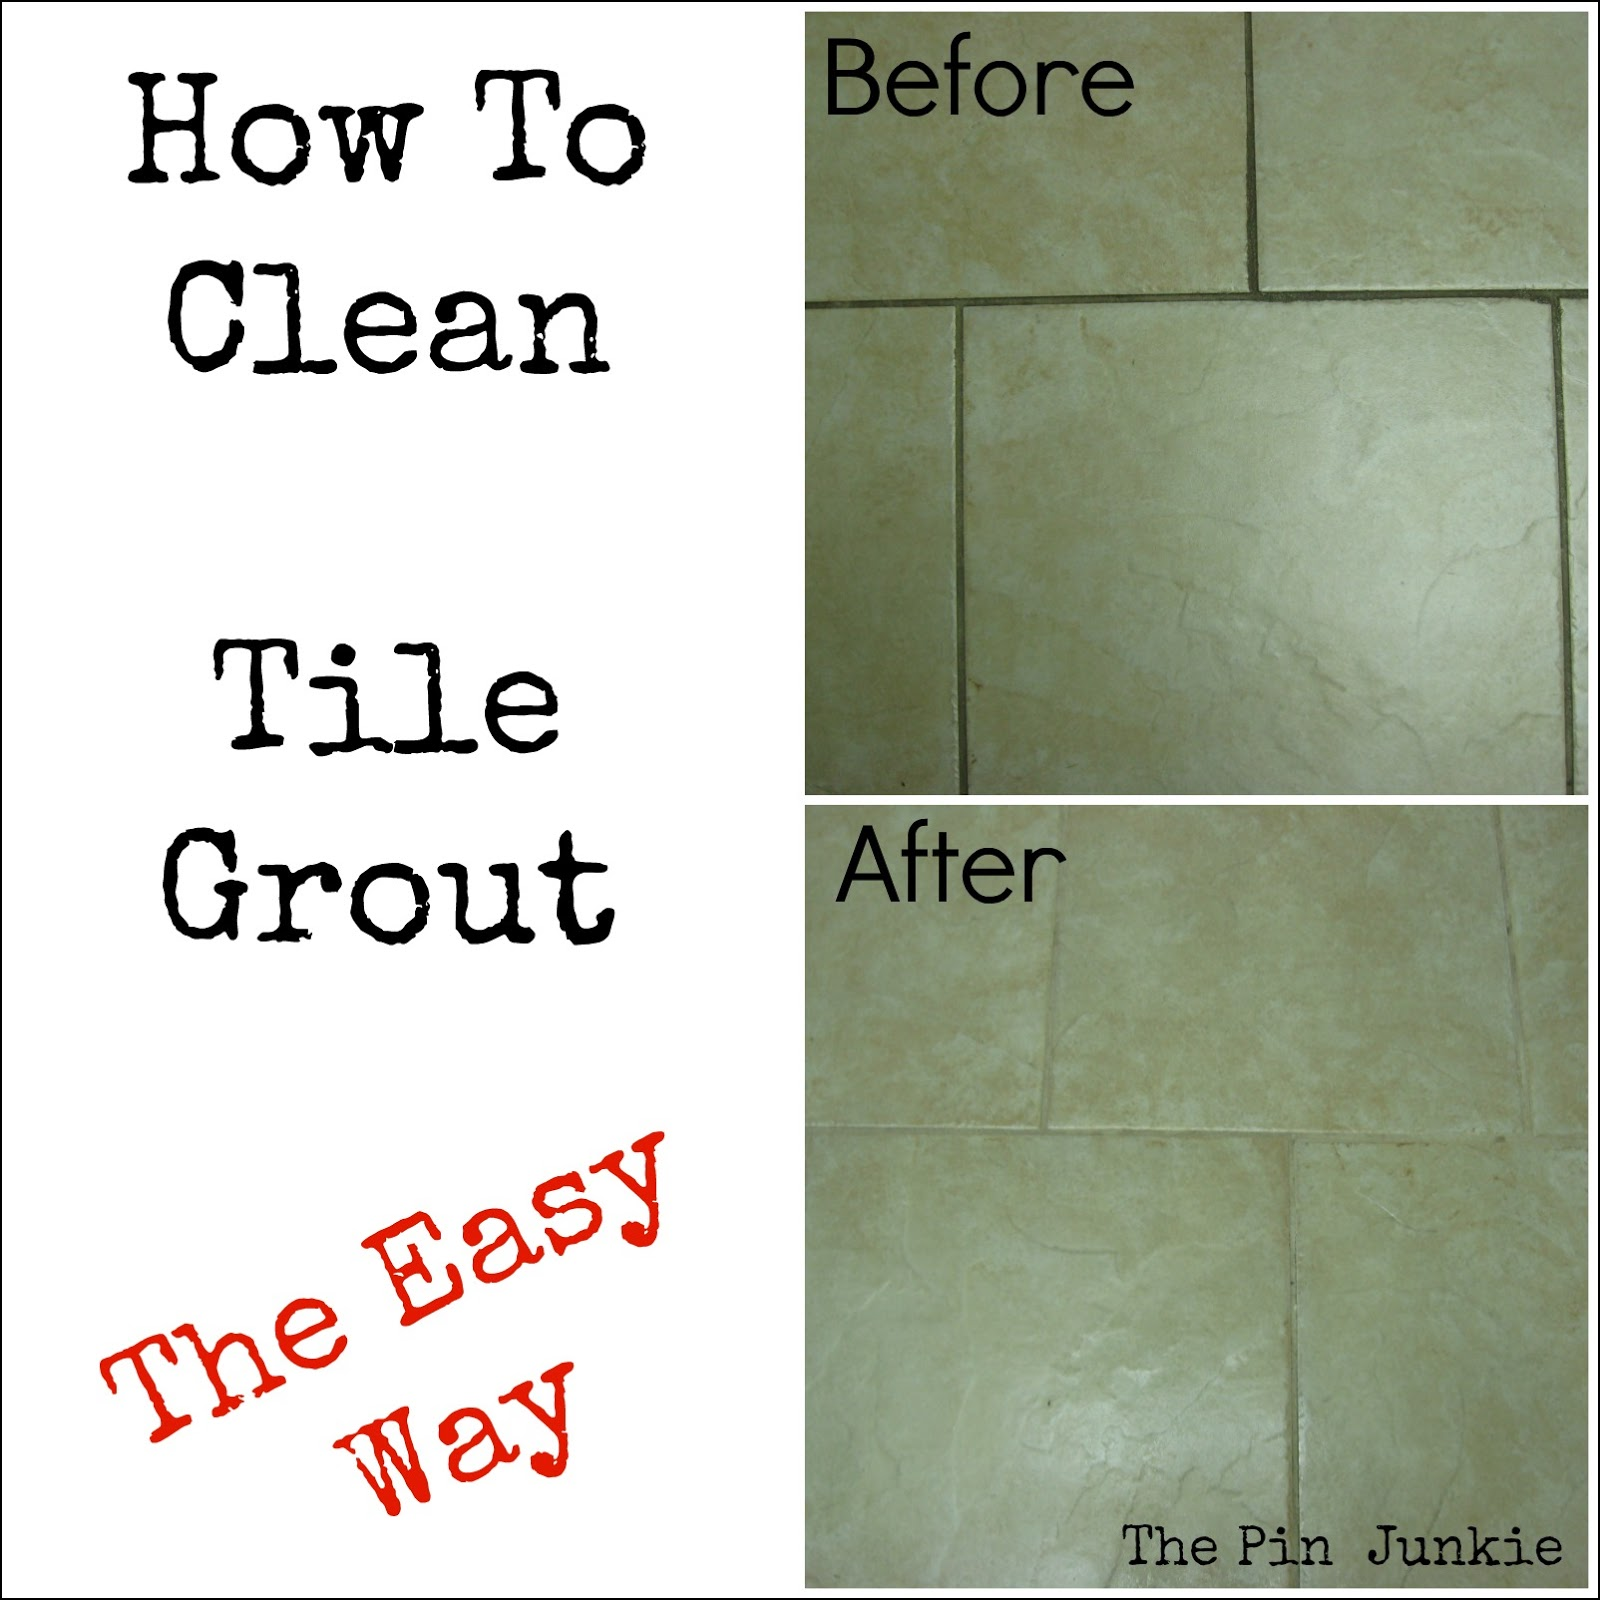 Ways to clean floor tile grout interior design the pin junkie how to clean tile grout dailygadgetfo Images